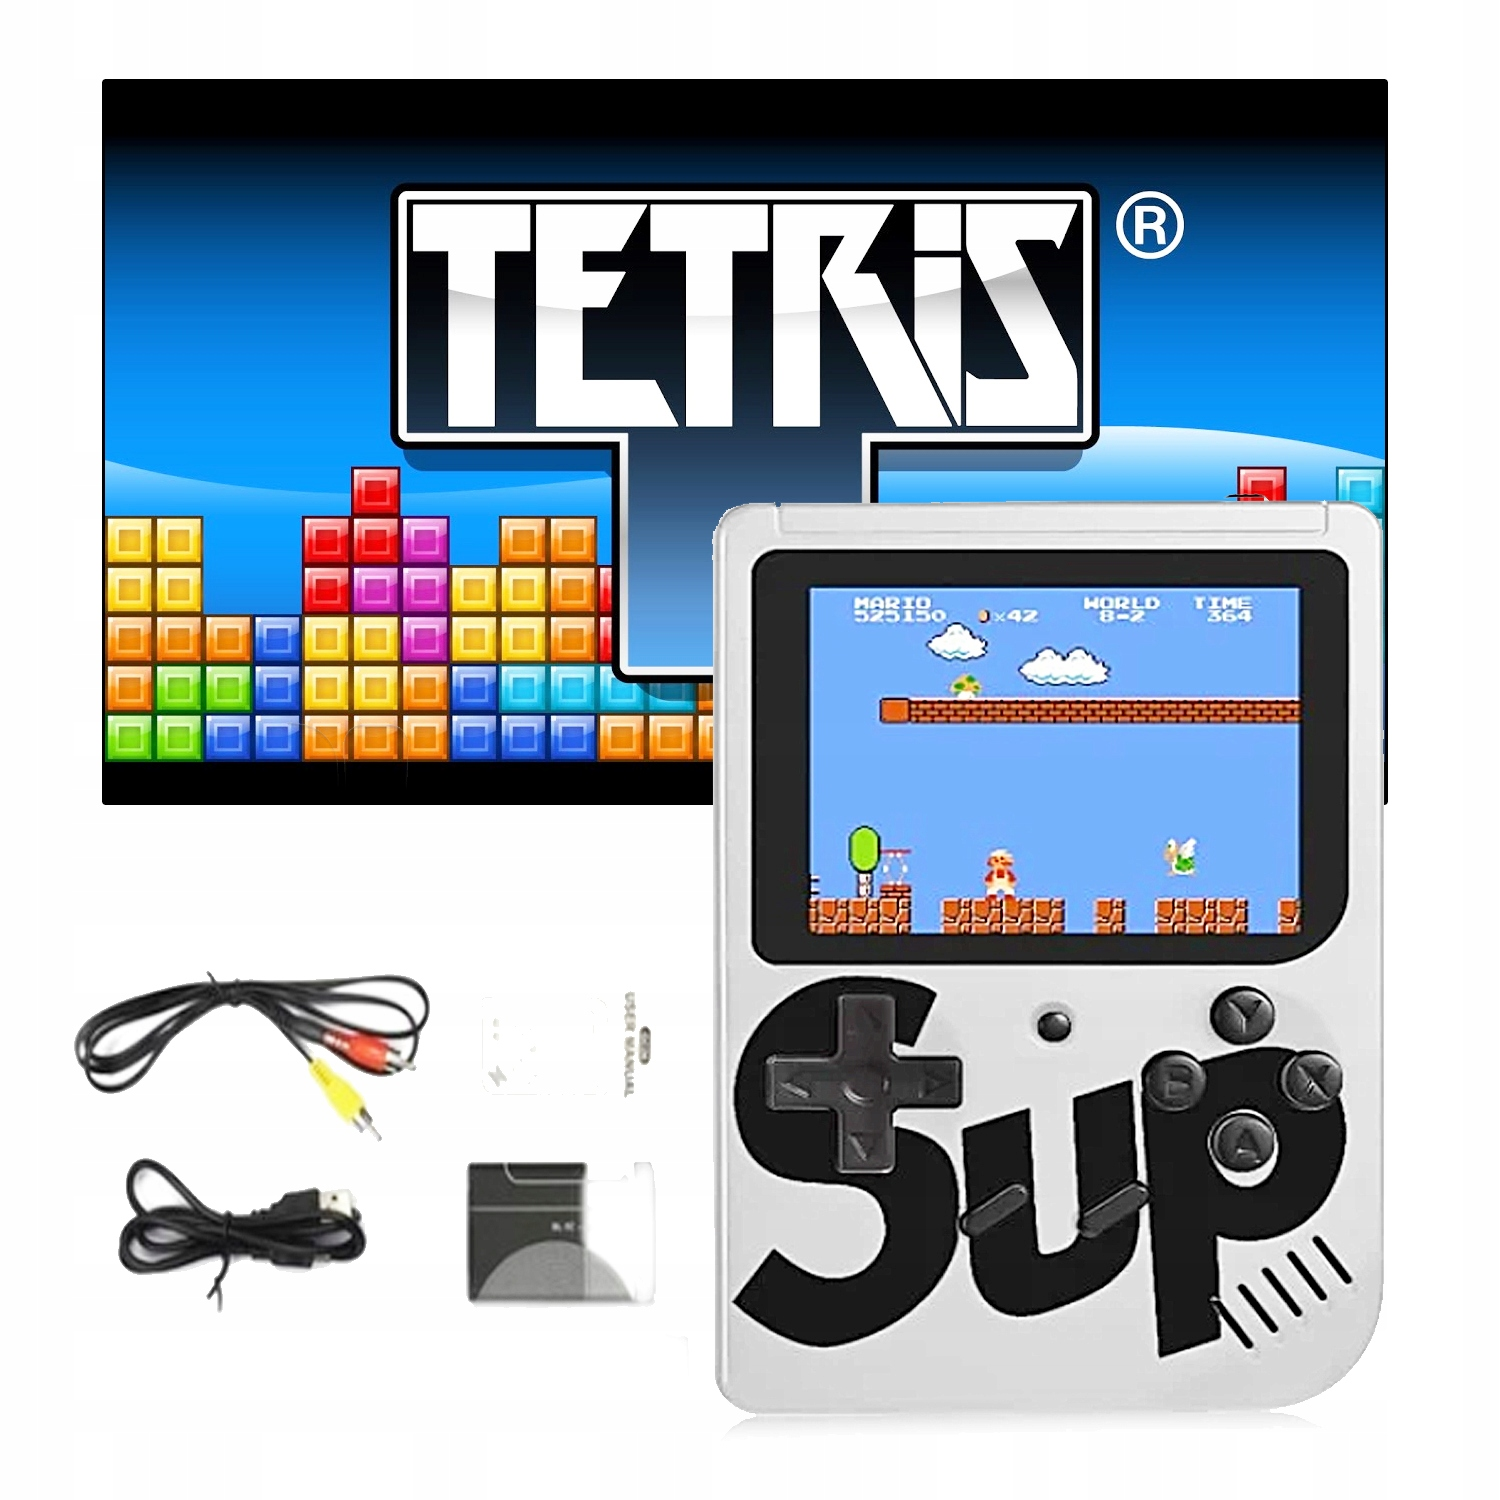 Item The electronic GAME console AV TETRIS MARIO